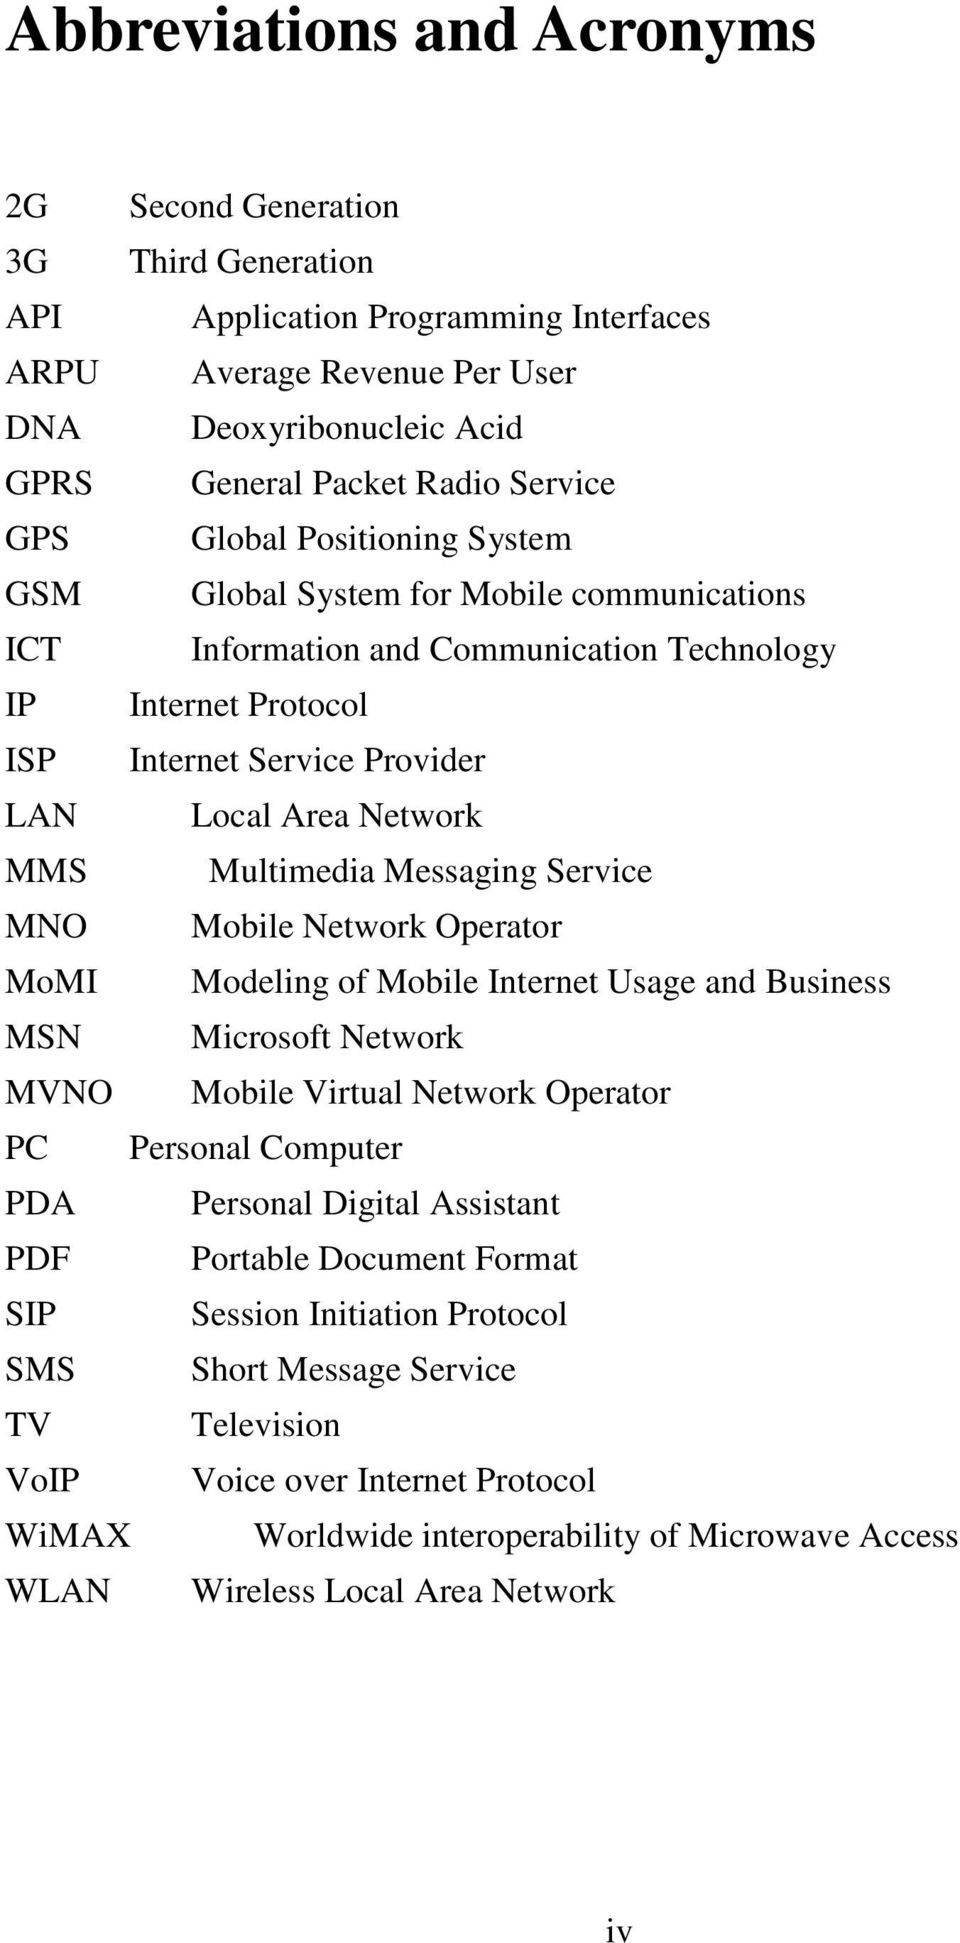 Multimedia Messaging Service MNO Mobile Network Operator MoMI Modeling of Mobile Internet Usage and Business MSN Microsoft Network MVNO Mobile Virtual Network Operator PC Personal Computer PDA